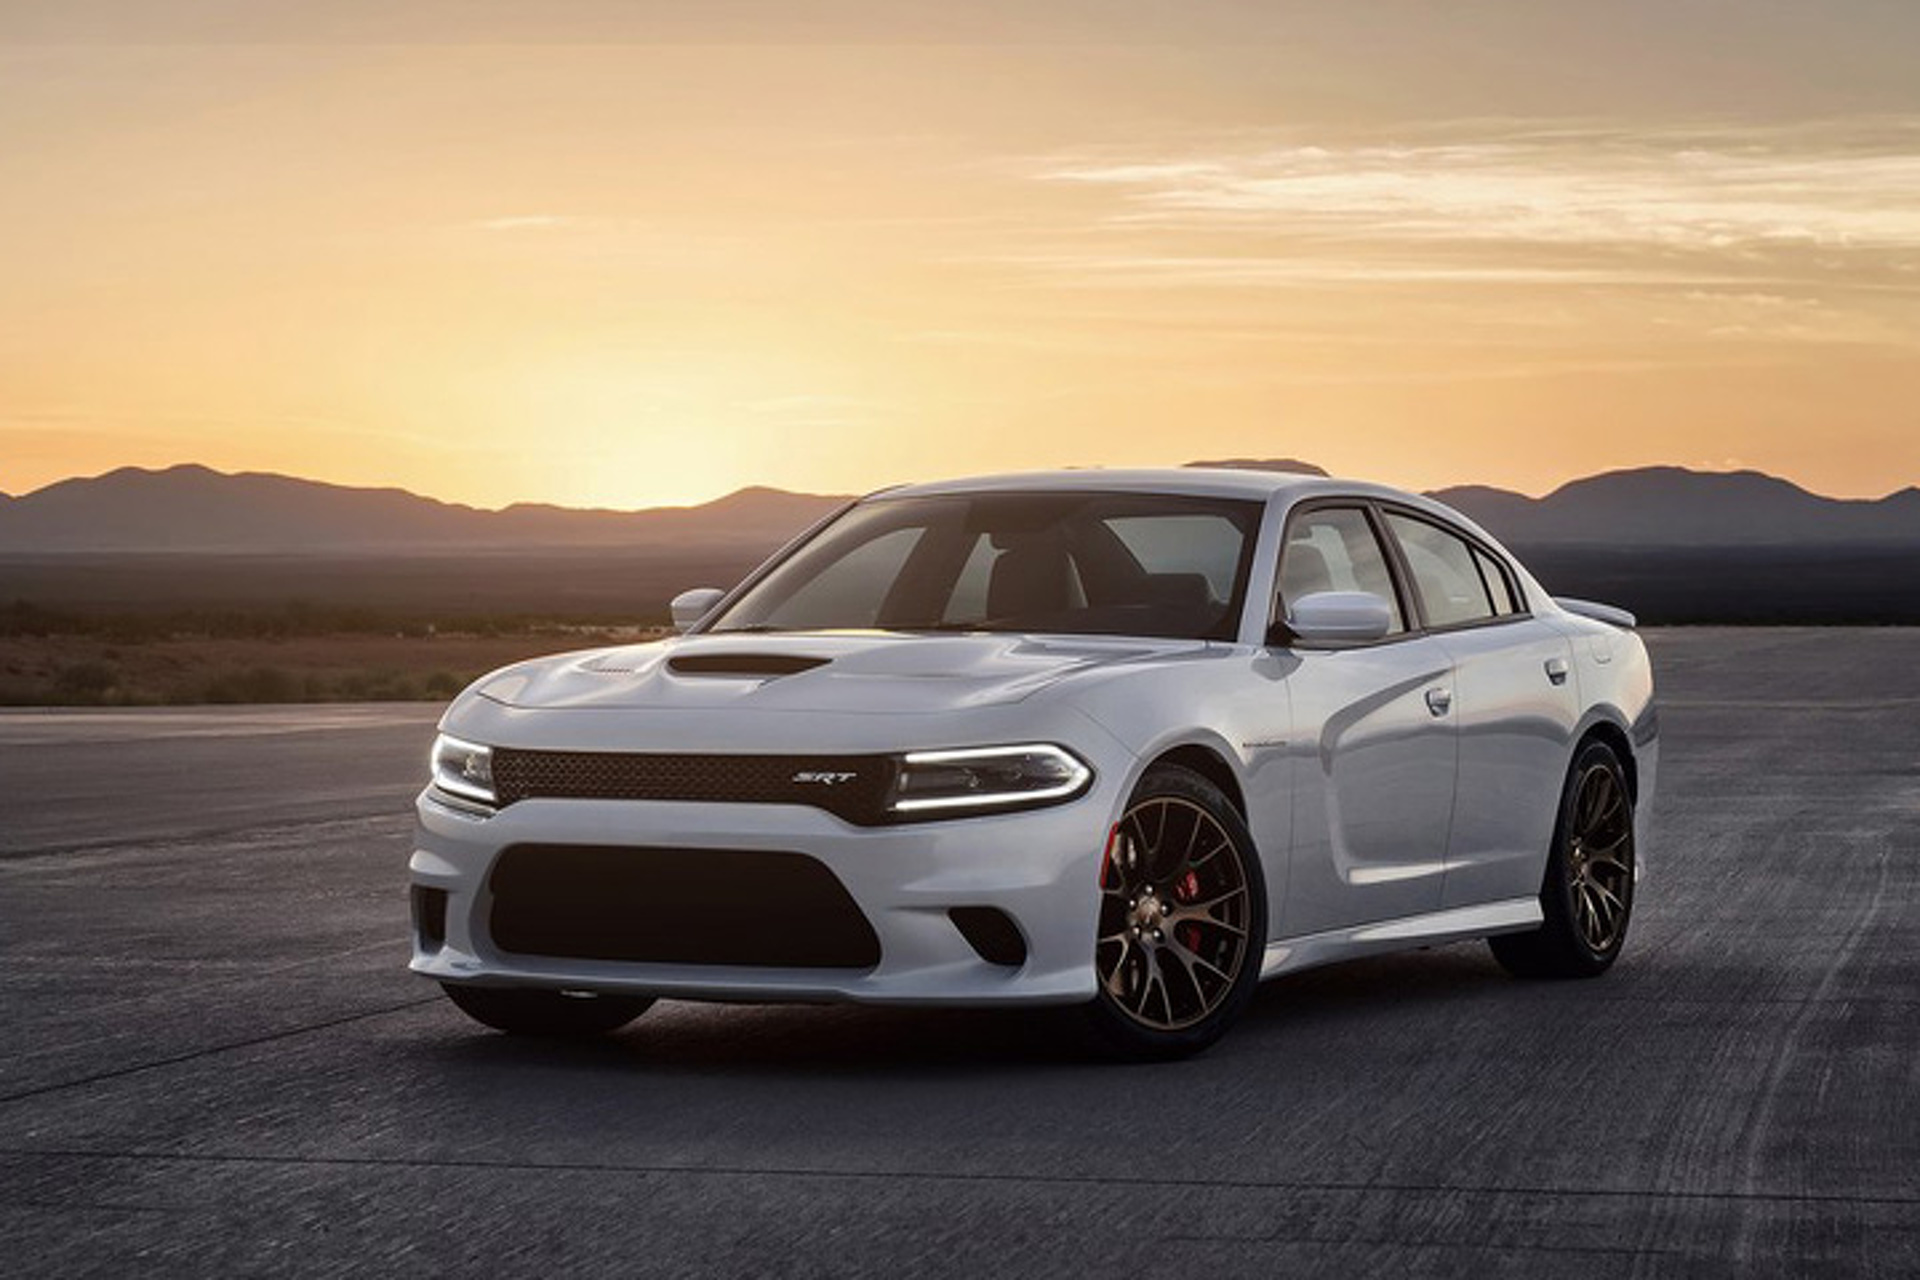 Dodge Recalling Every Hellcat for Possible Fuel Leaks